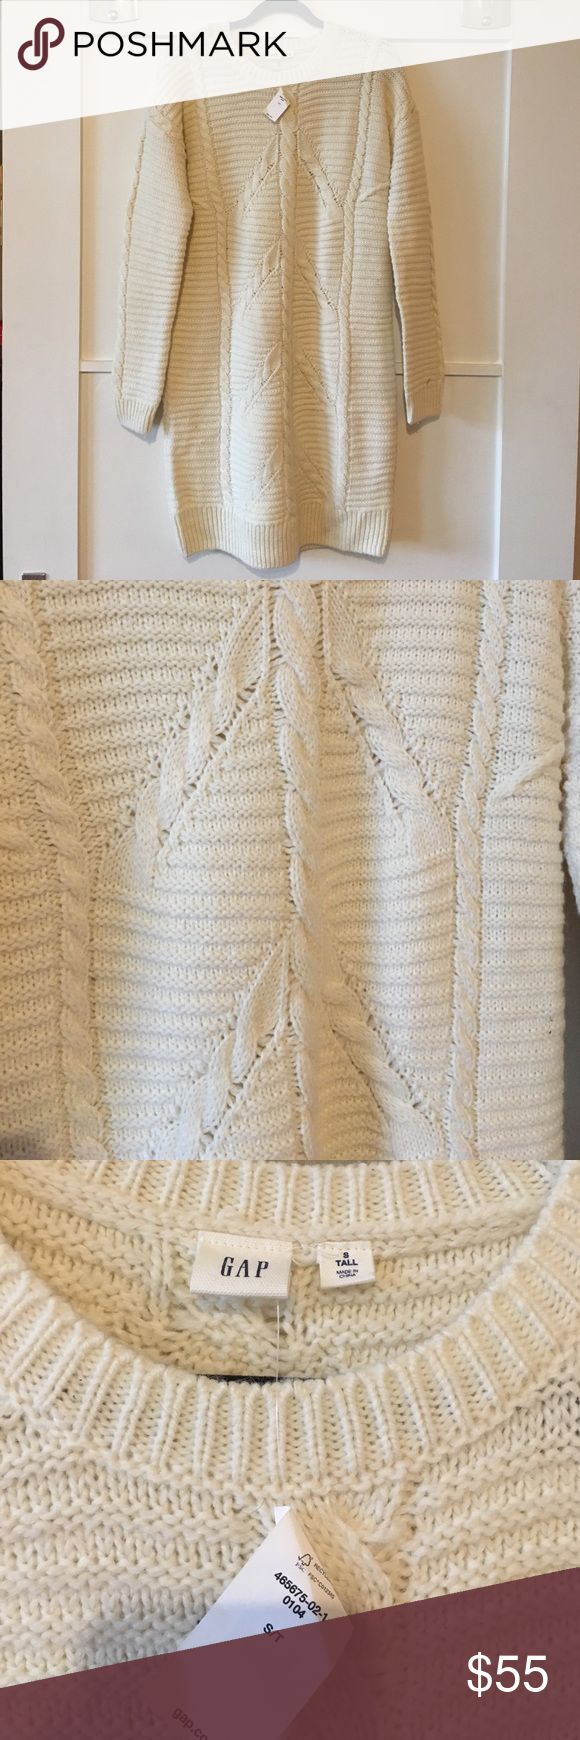 HOST PICK! 💚💜 NWT! Cozy cream sweater dress! Cozy sweater dress with cable-knit accents! Size ST! GAP Dresses